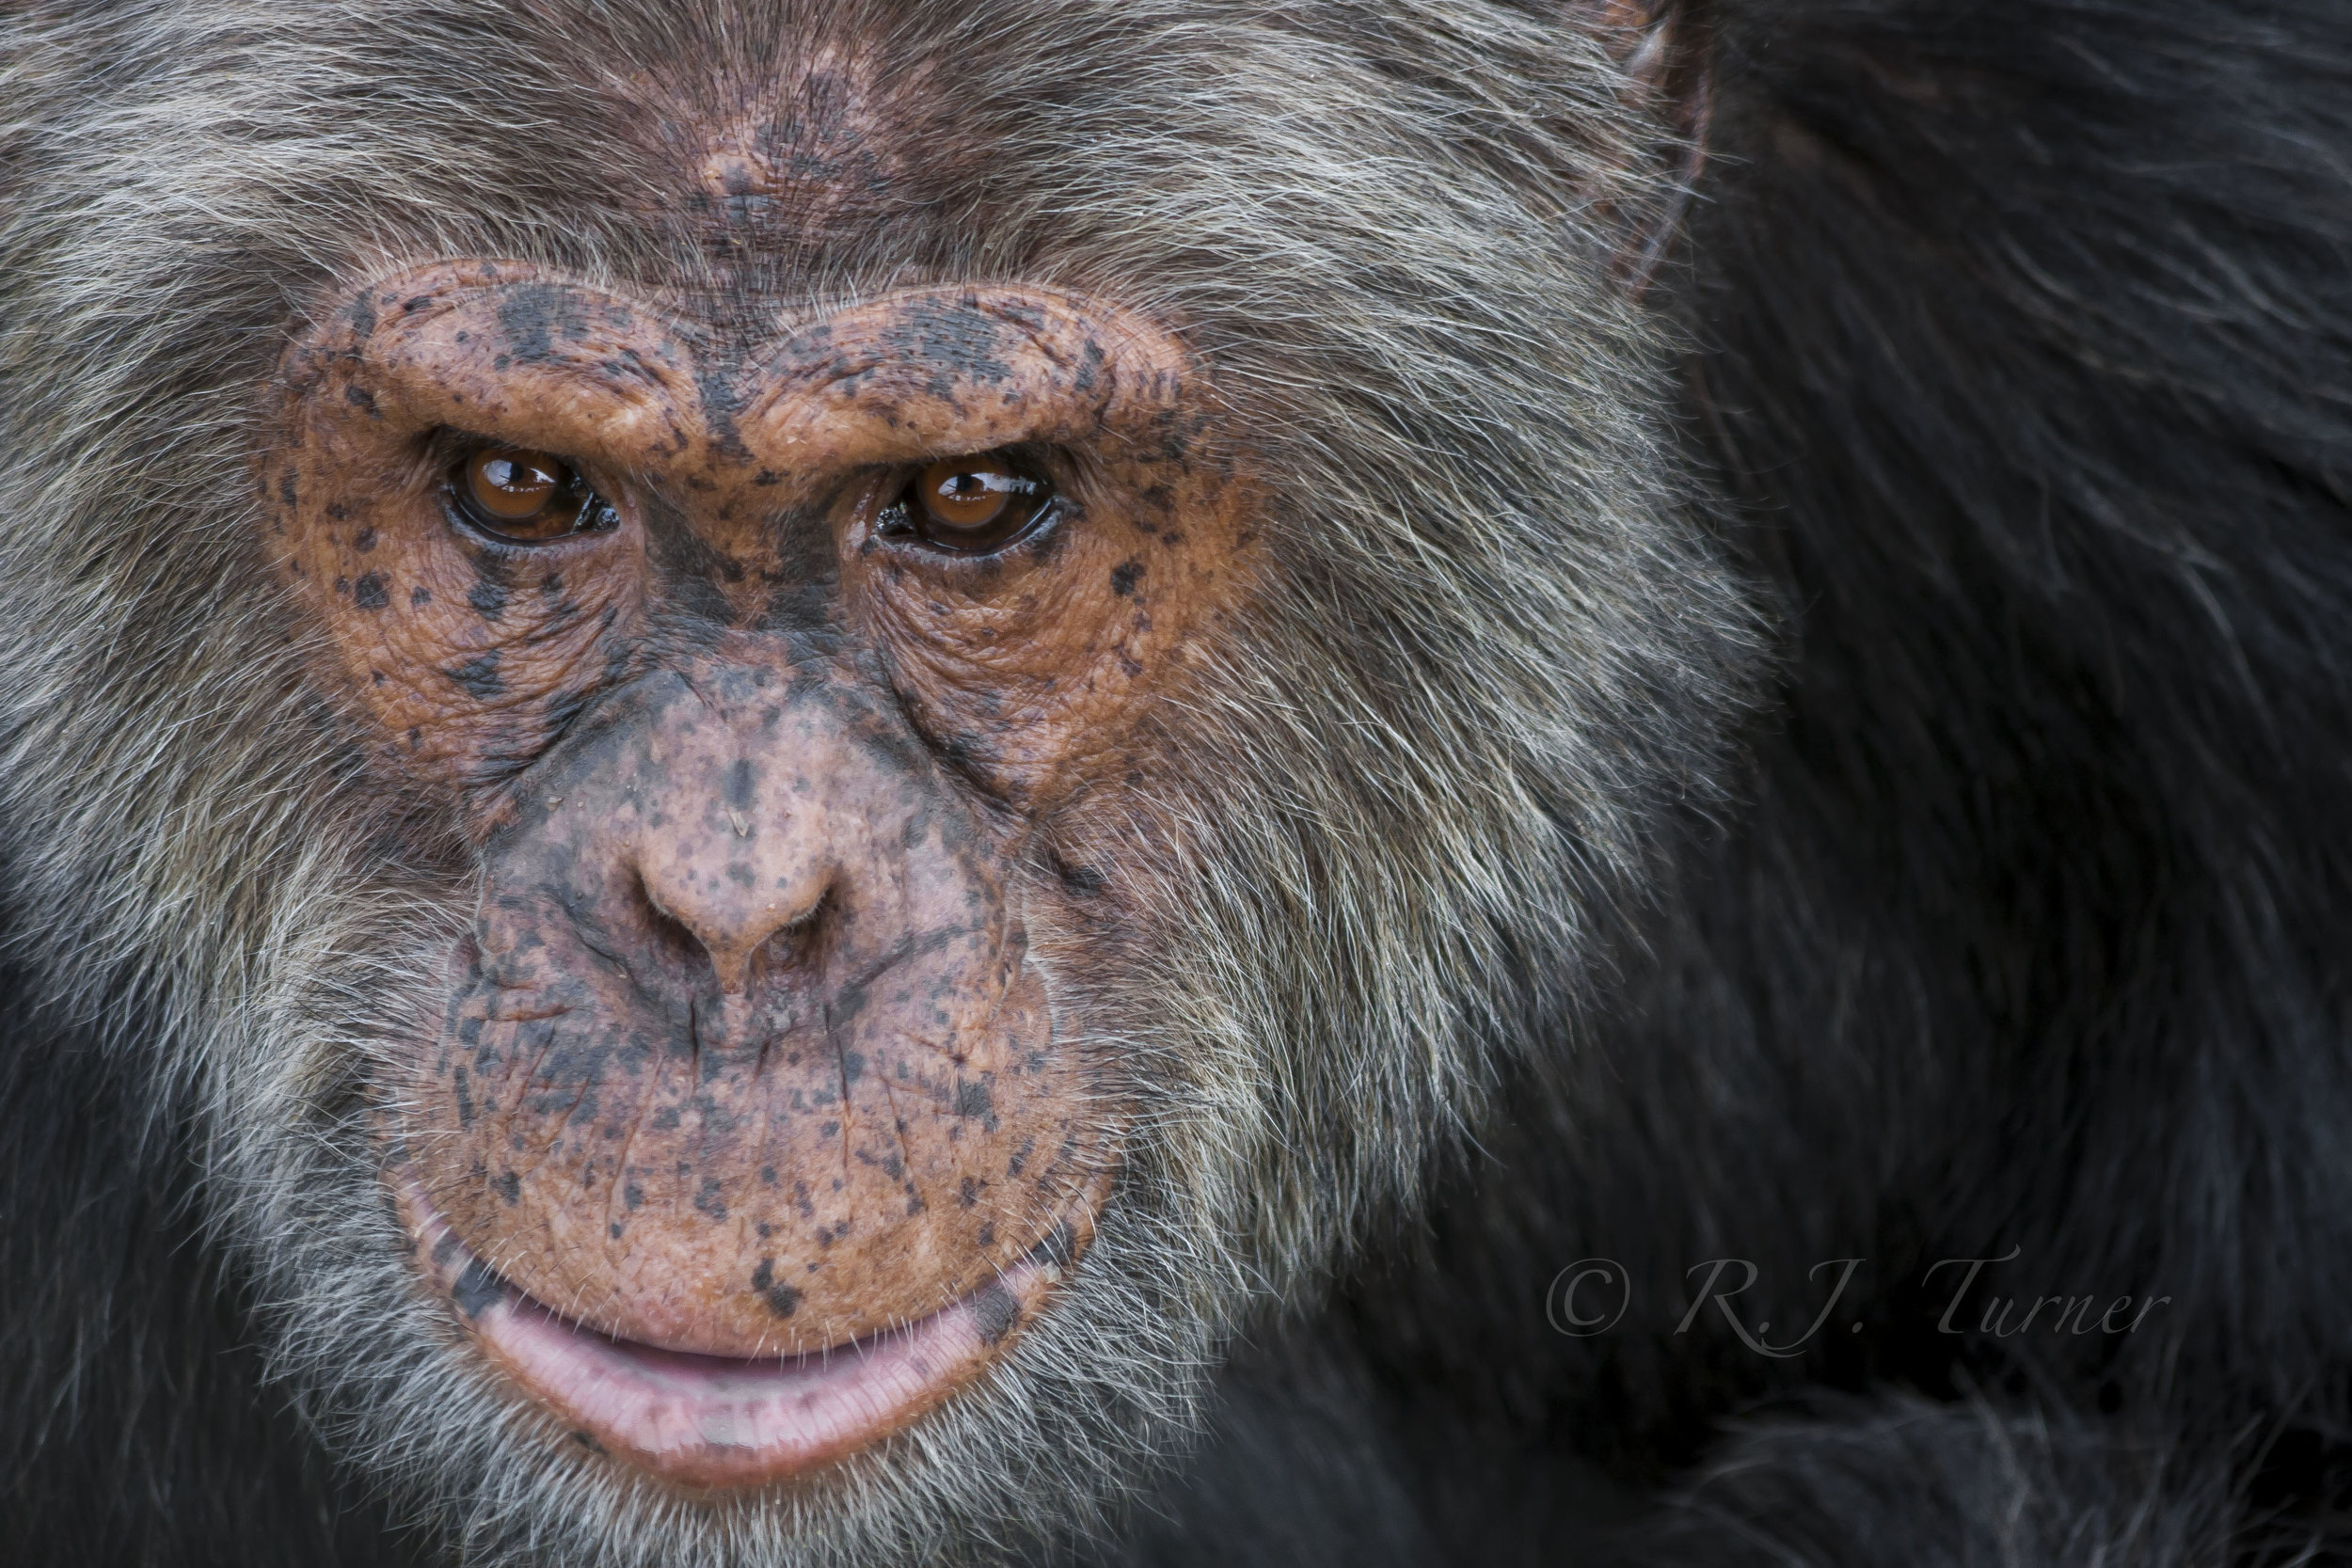 In 2018 R.J. Turner's image,  Tumbo , was selected to be a part of the conservation project Remembering Great Apes. Her image will appear in the coffee table book  Remembering Great Apes , and will also be on display at La Galleria Pall Mall in London, England this October. With all profits going directly to help great apes all over the world, R.J. is thrilled to be involved for the second time with the project Remembering Wildlife. To learn more visit: https://rememberingwildlife.com/remembering-great-apes/